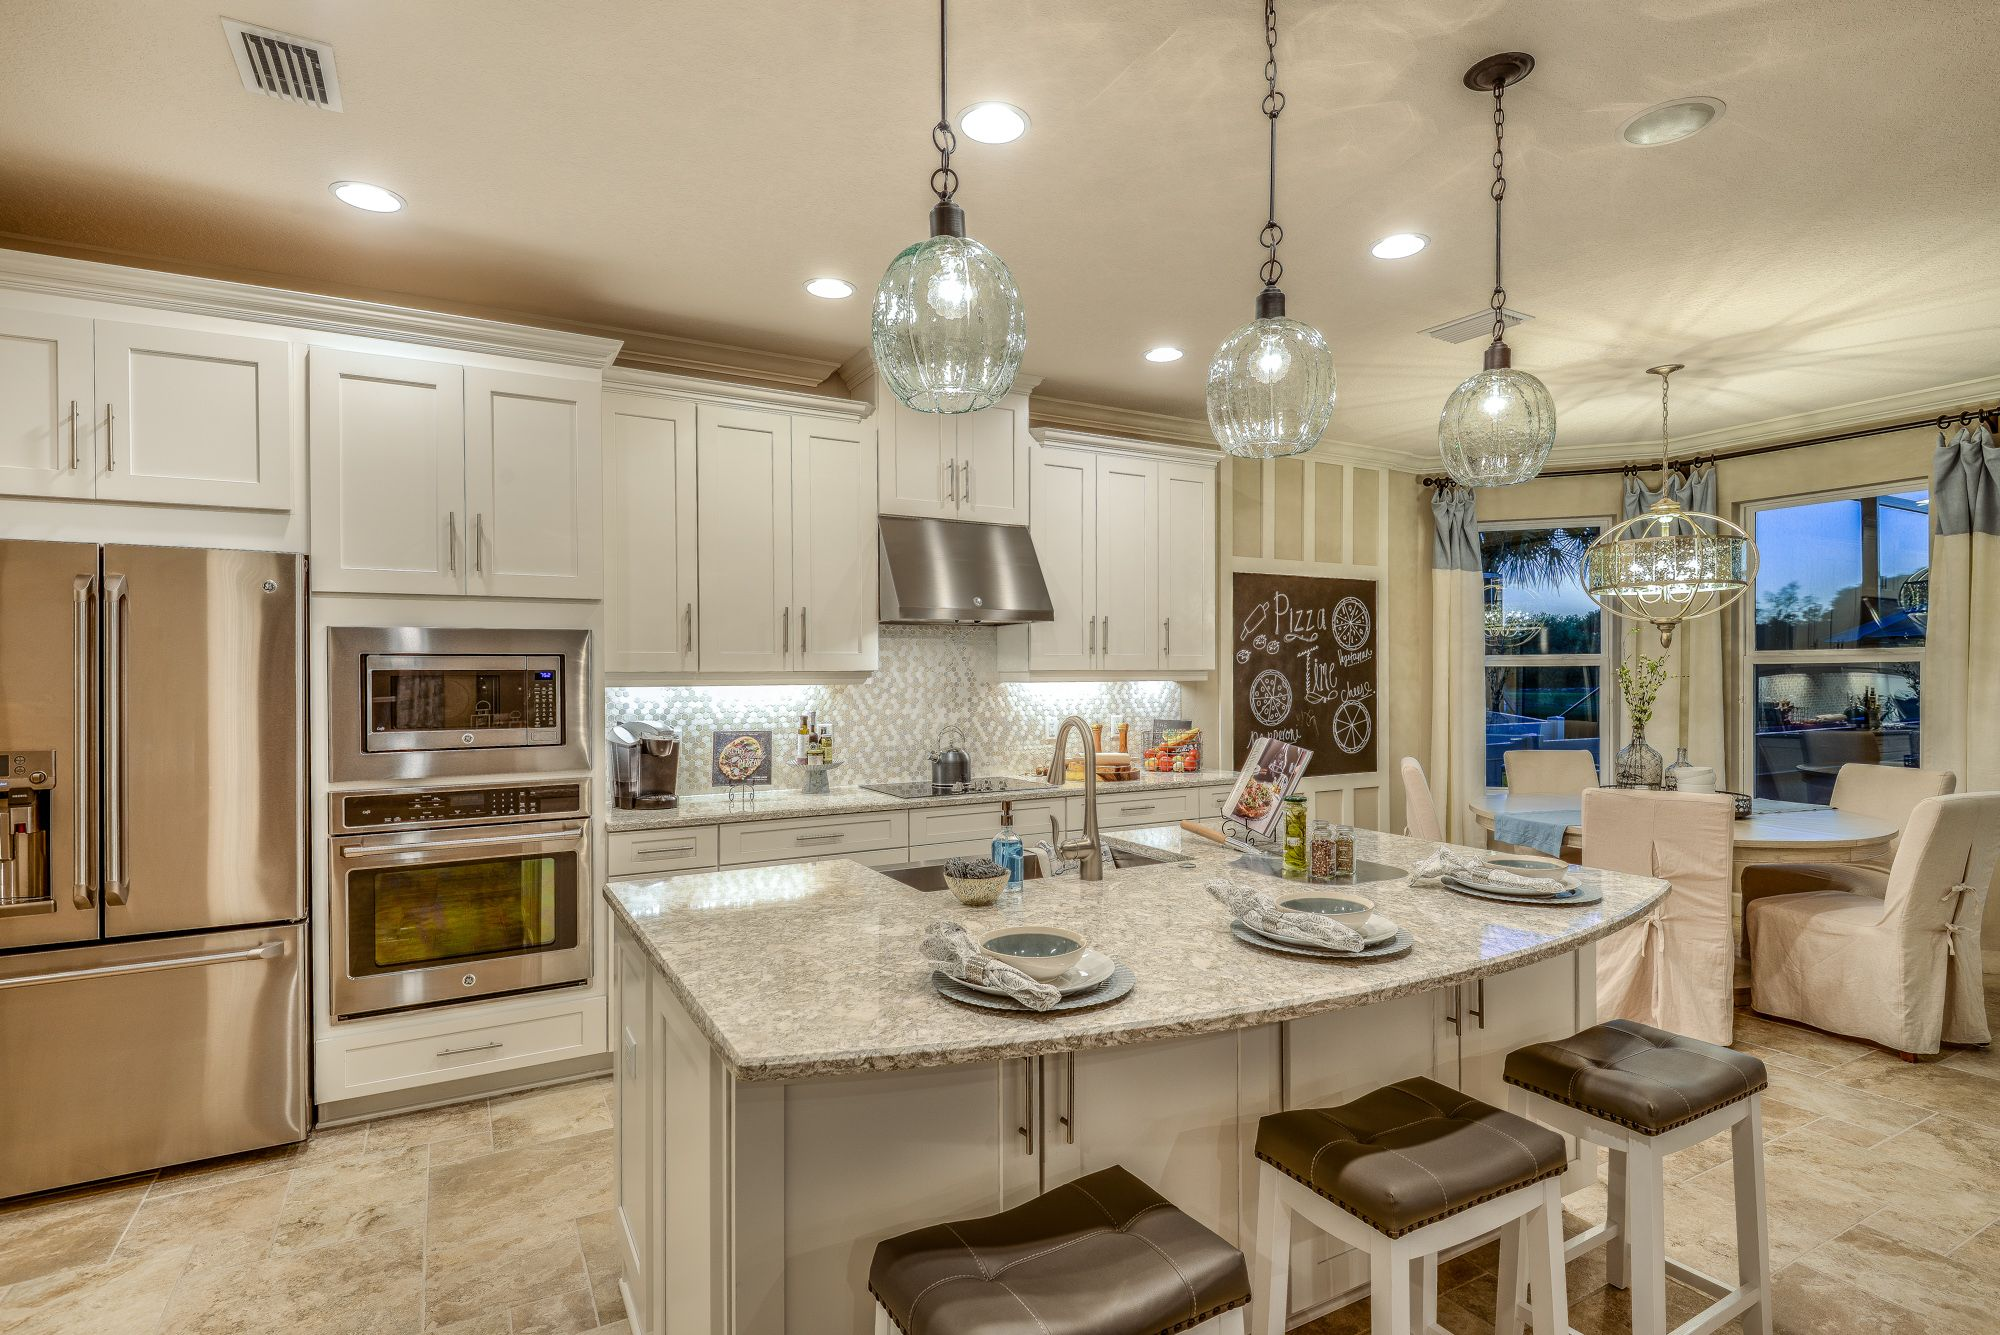 Show Off Your New Culinary Skills From This Showstopping Kitchen